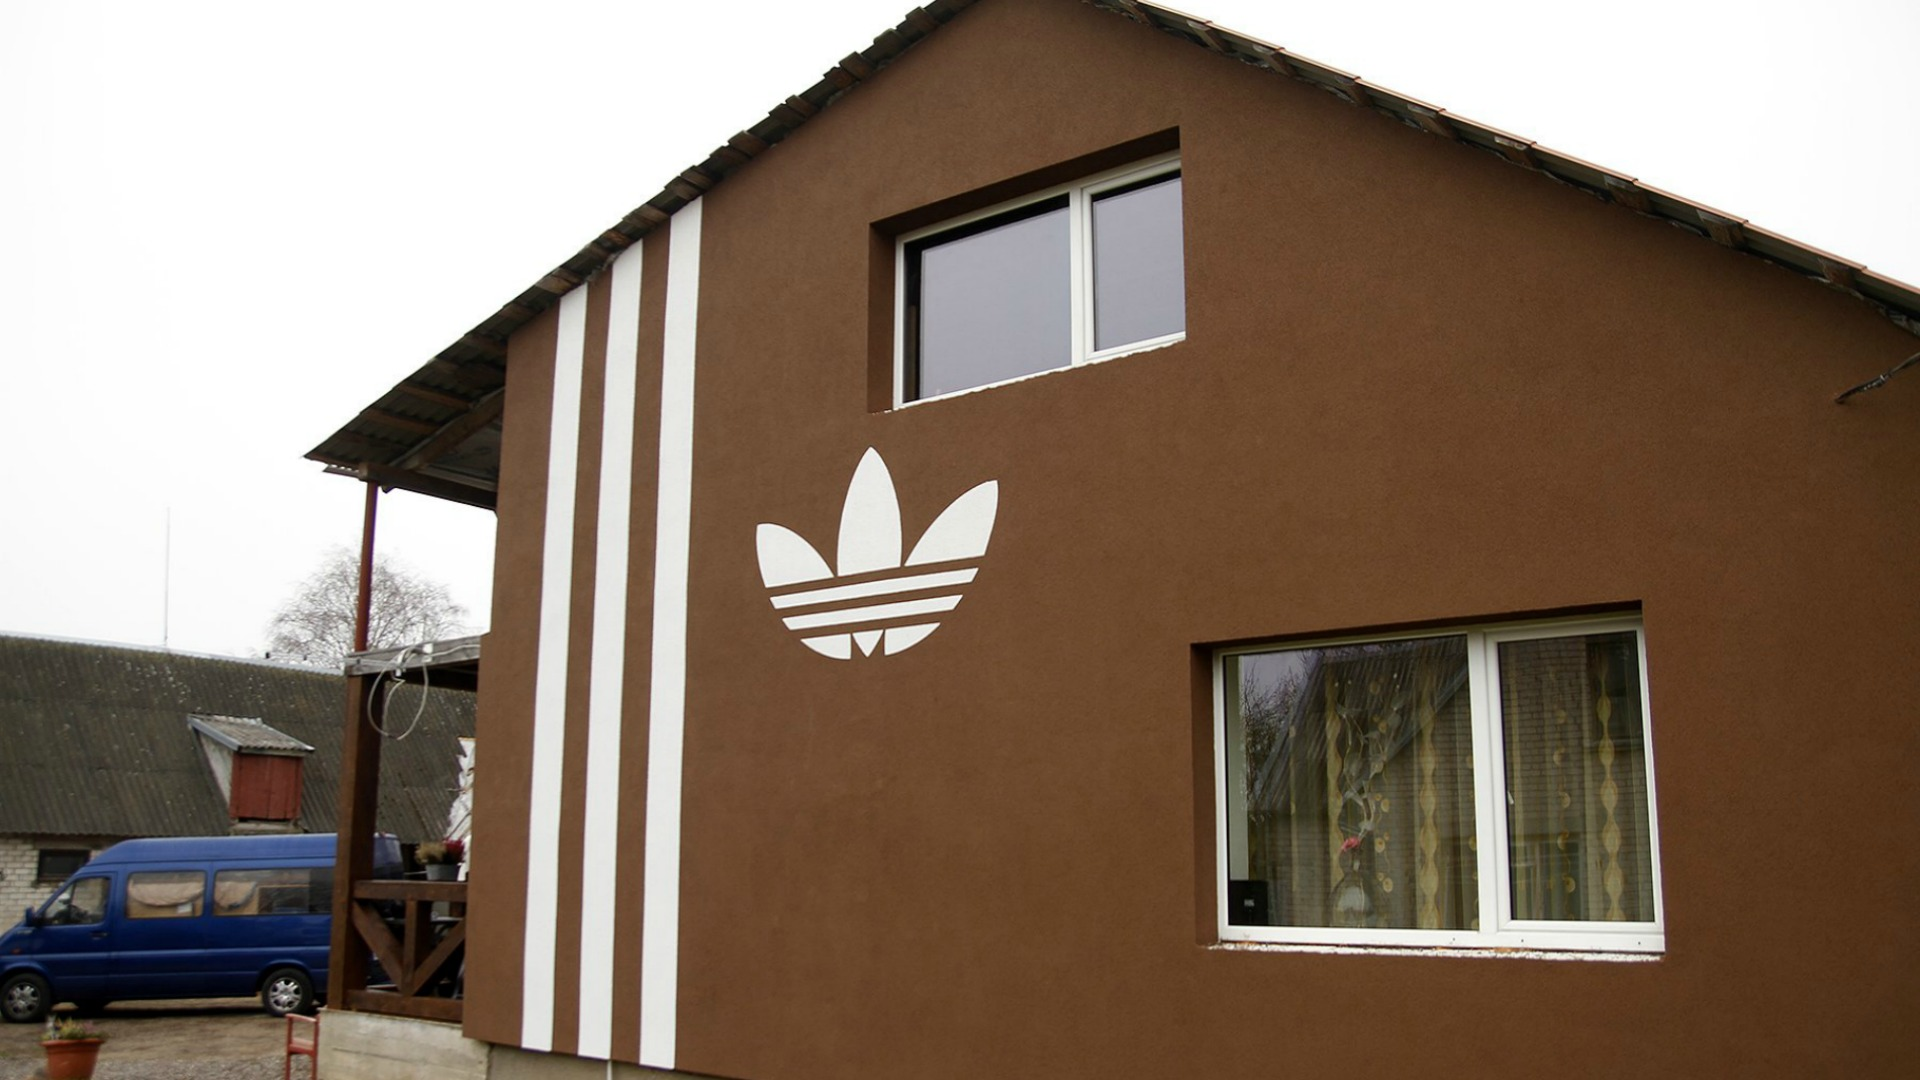 Adidas house in Lithuania